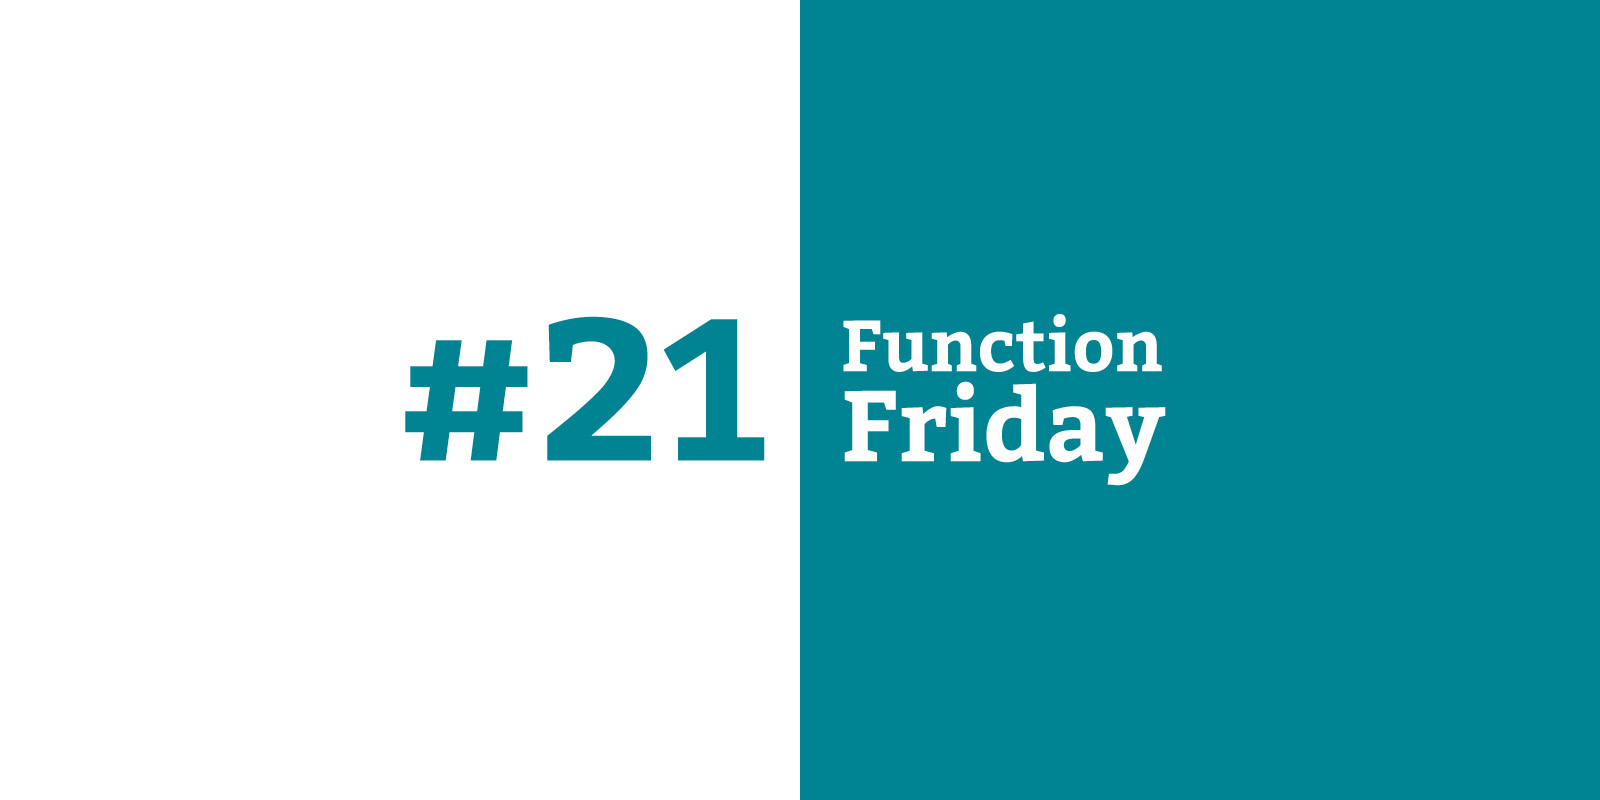 Function Friday #21